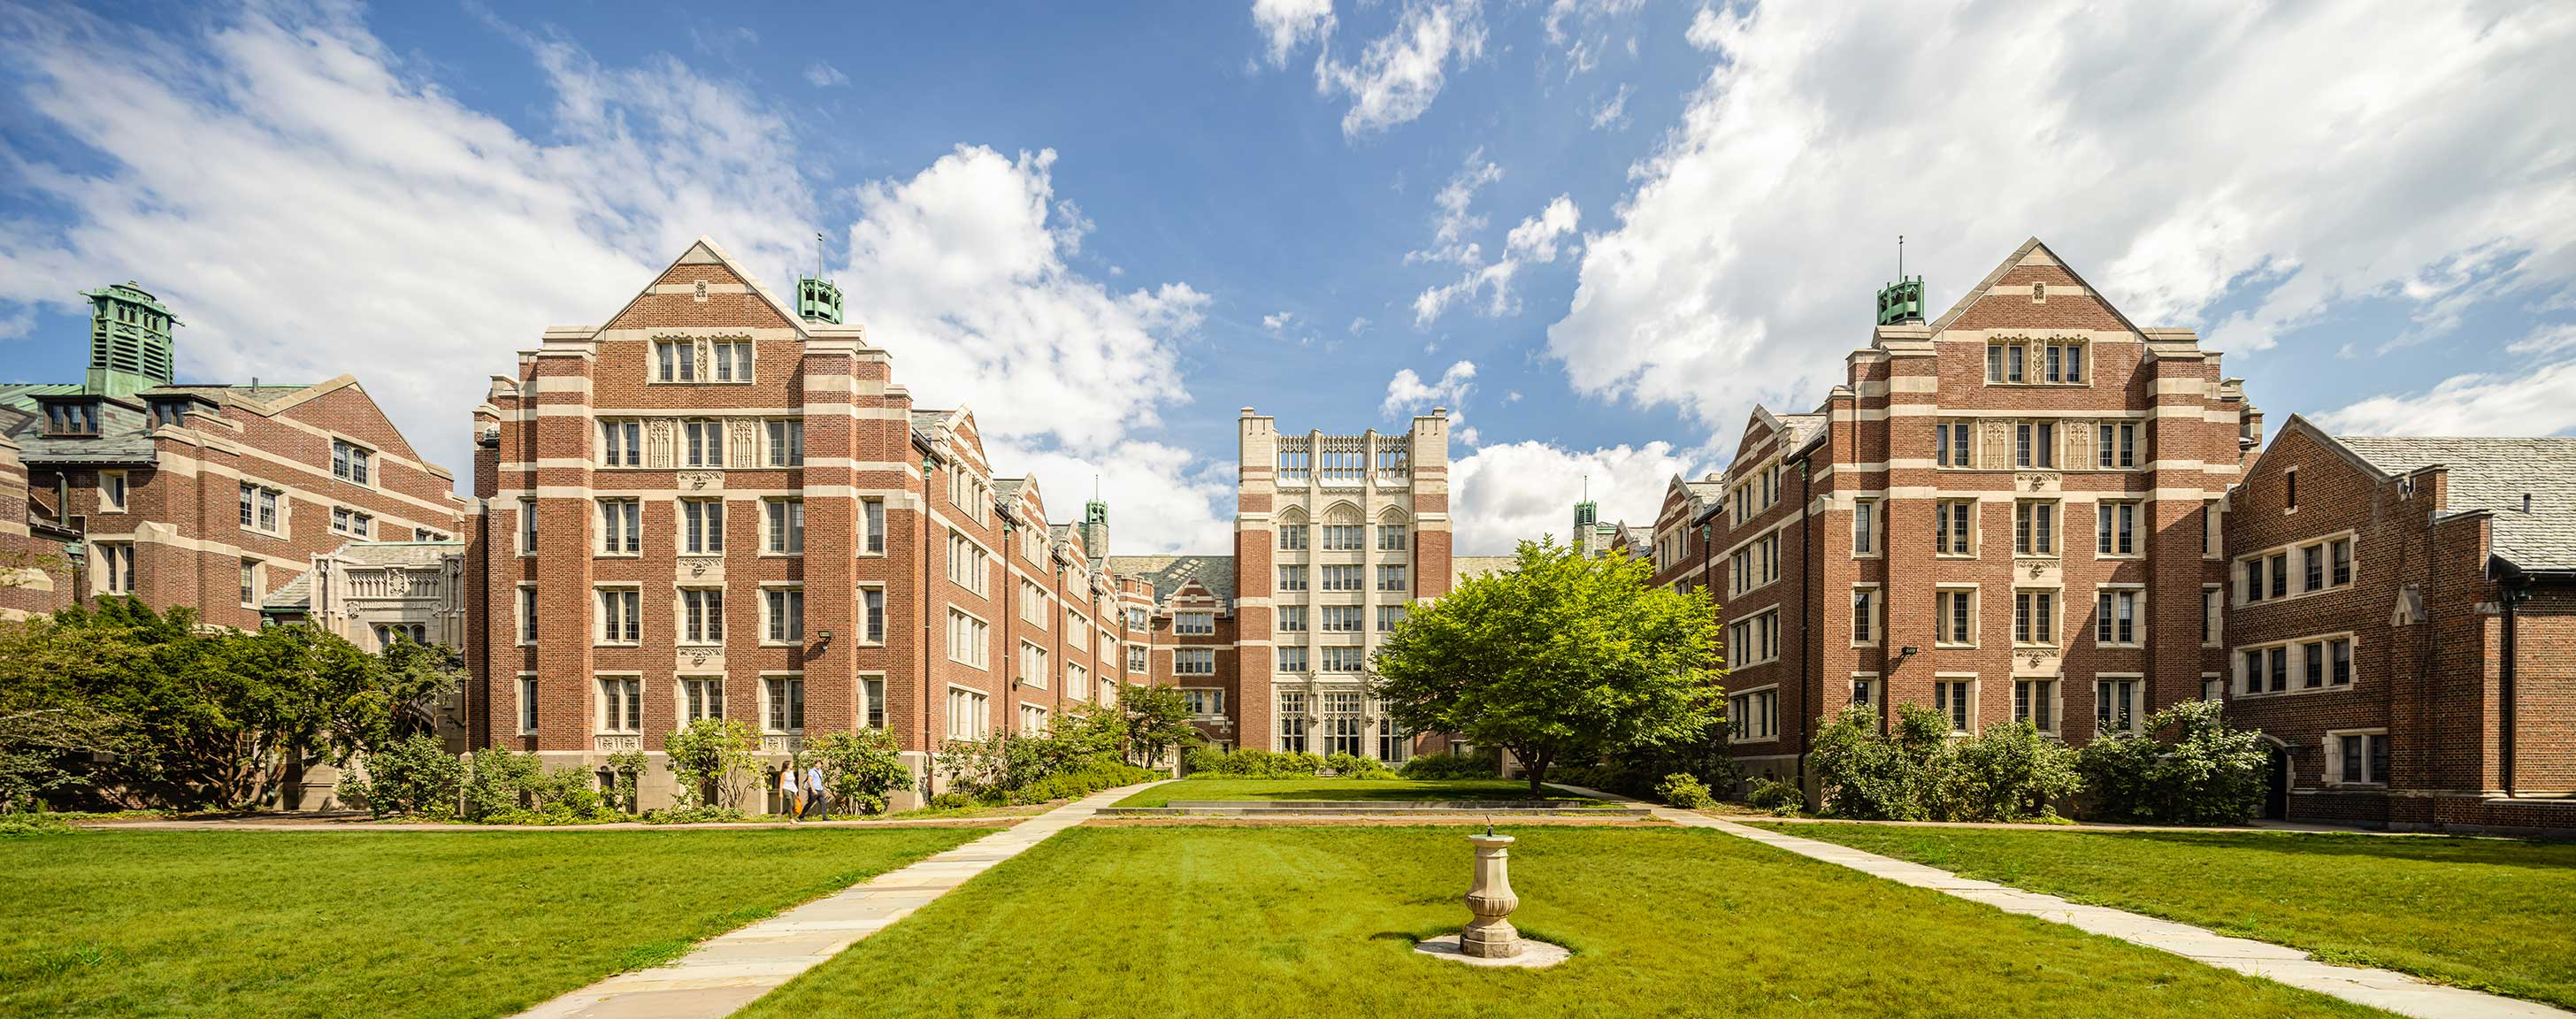 Wellesley College Residences